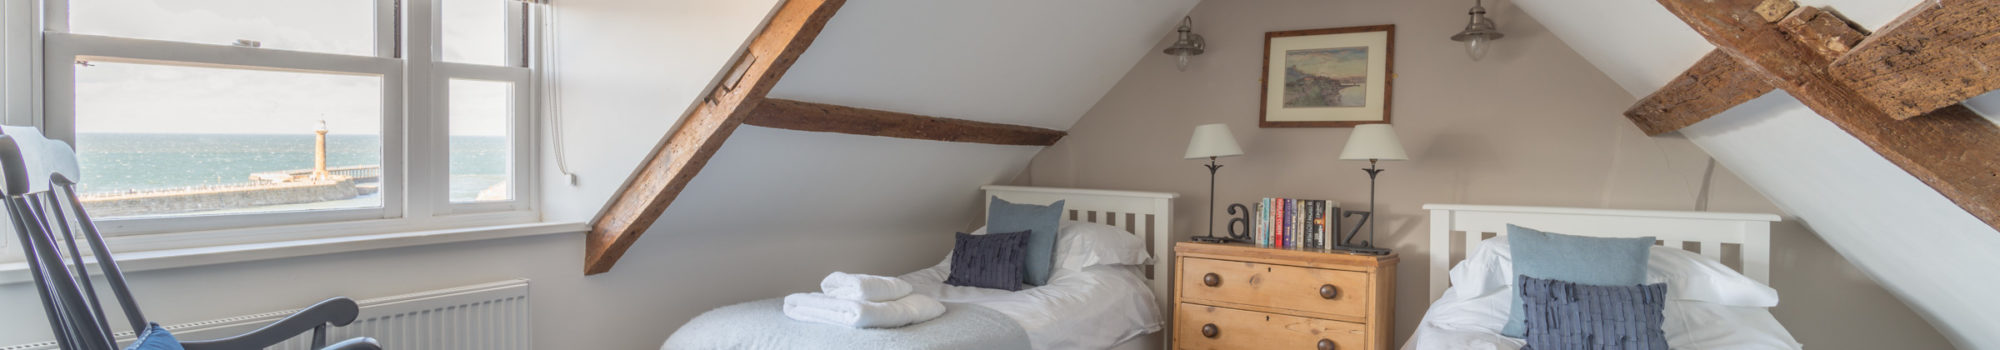 Tipple Cottage Whitby - Attic twin bedroom